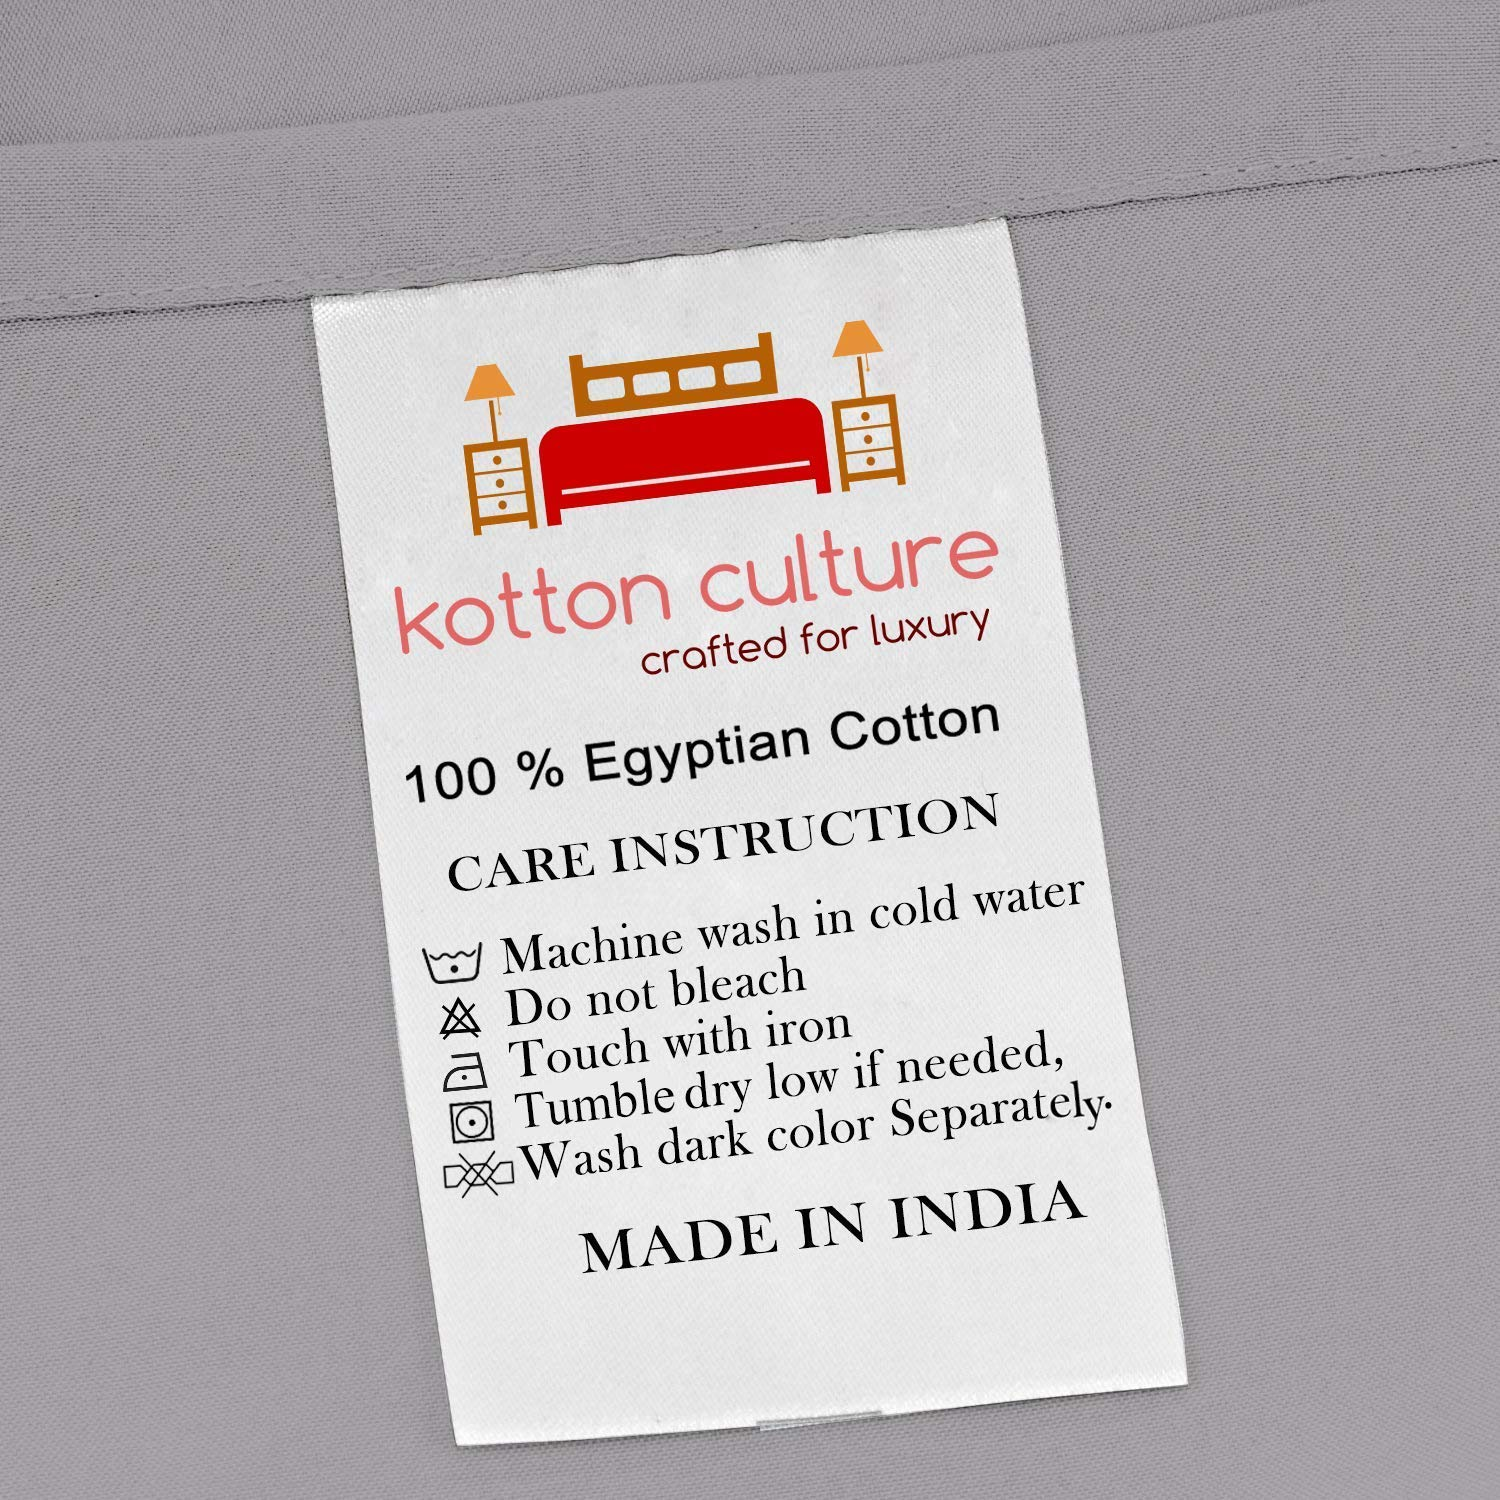 Kotton Culture Pinch Pleated Duvet Cover with Zipper & Corner Ties 100% Egyptian Cotton 600 Thread Count Luxurious & Hypoallergenic Pintuck Decorative (California King/King, Silver) by Kotton Culture (Image #3)